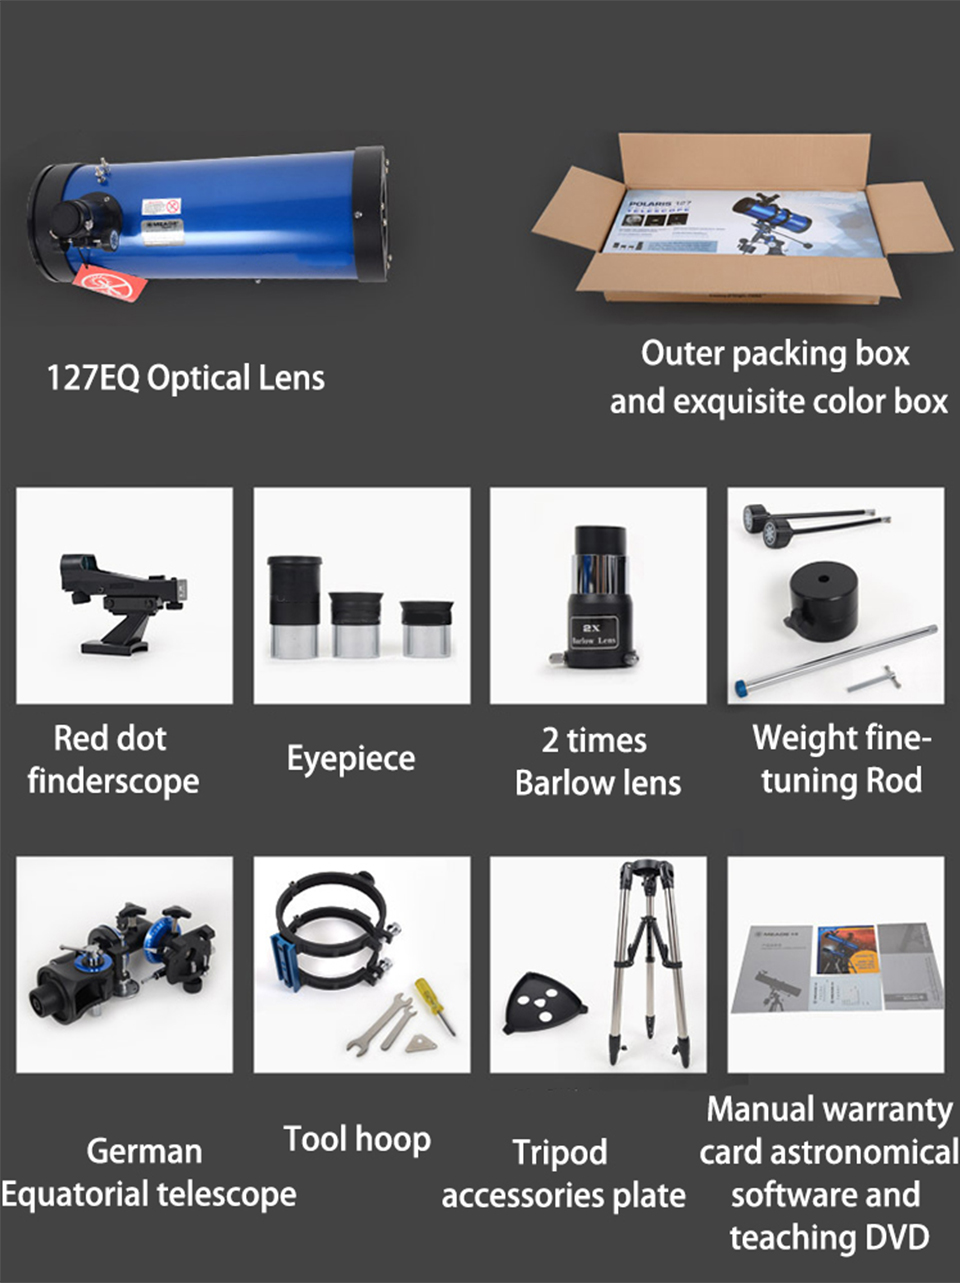 Professional Astronomical Telescope High-Power HD Night Vision Deep Space Star View Telescope Powerful Monocular with Tripod, (Telescope For Sale, Telescope For Adults, Telescope For Kids, Telescope For Beginners, Best Outdoor Telescope).